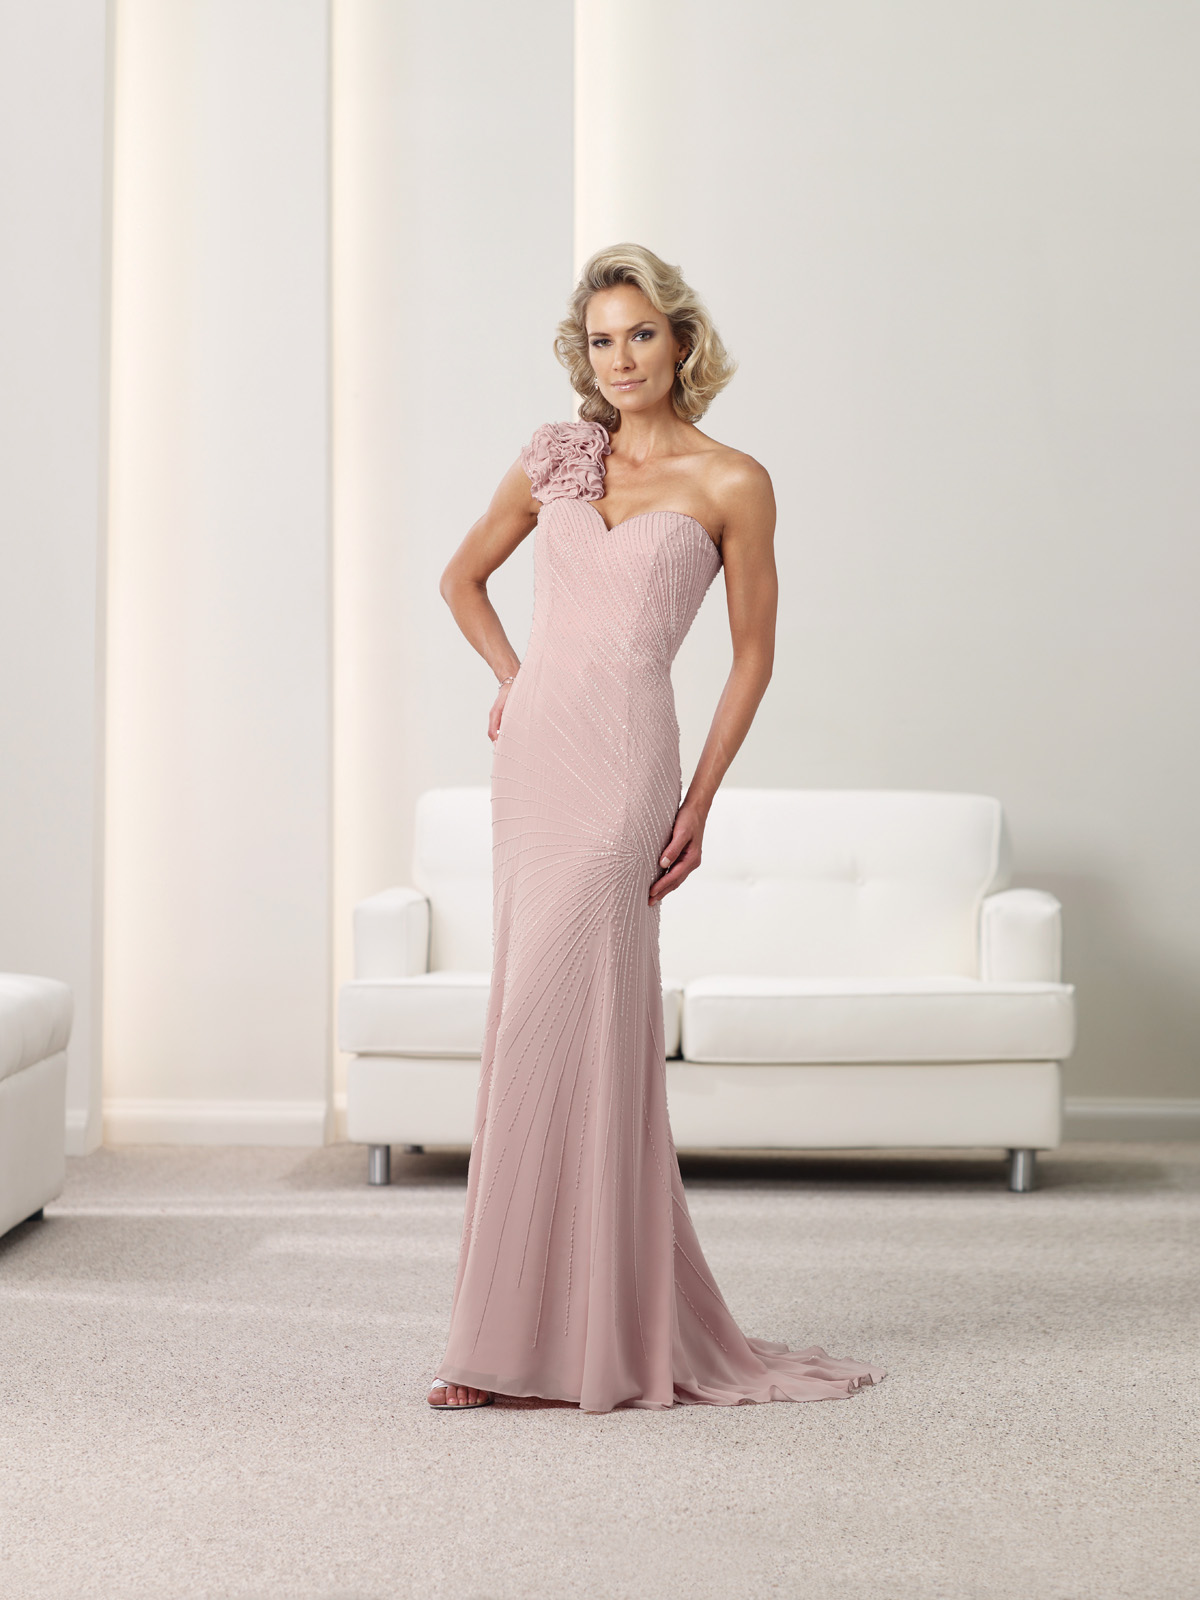 Chic-mother-of-the-bride-dresses-wedding-fashion-dos-and-donts-mon-cheri-7.original